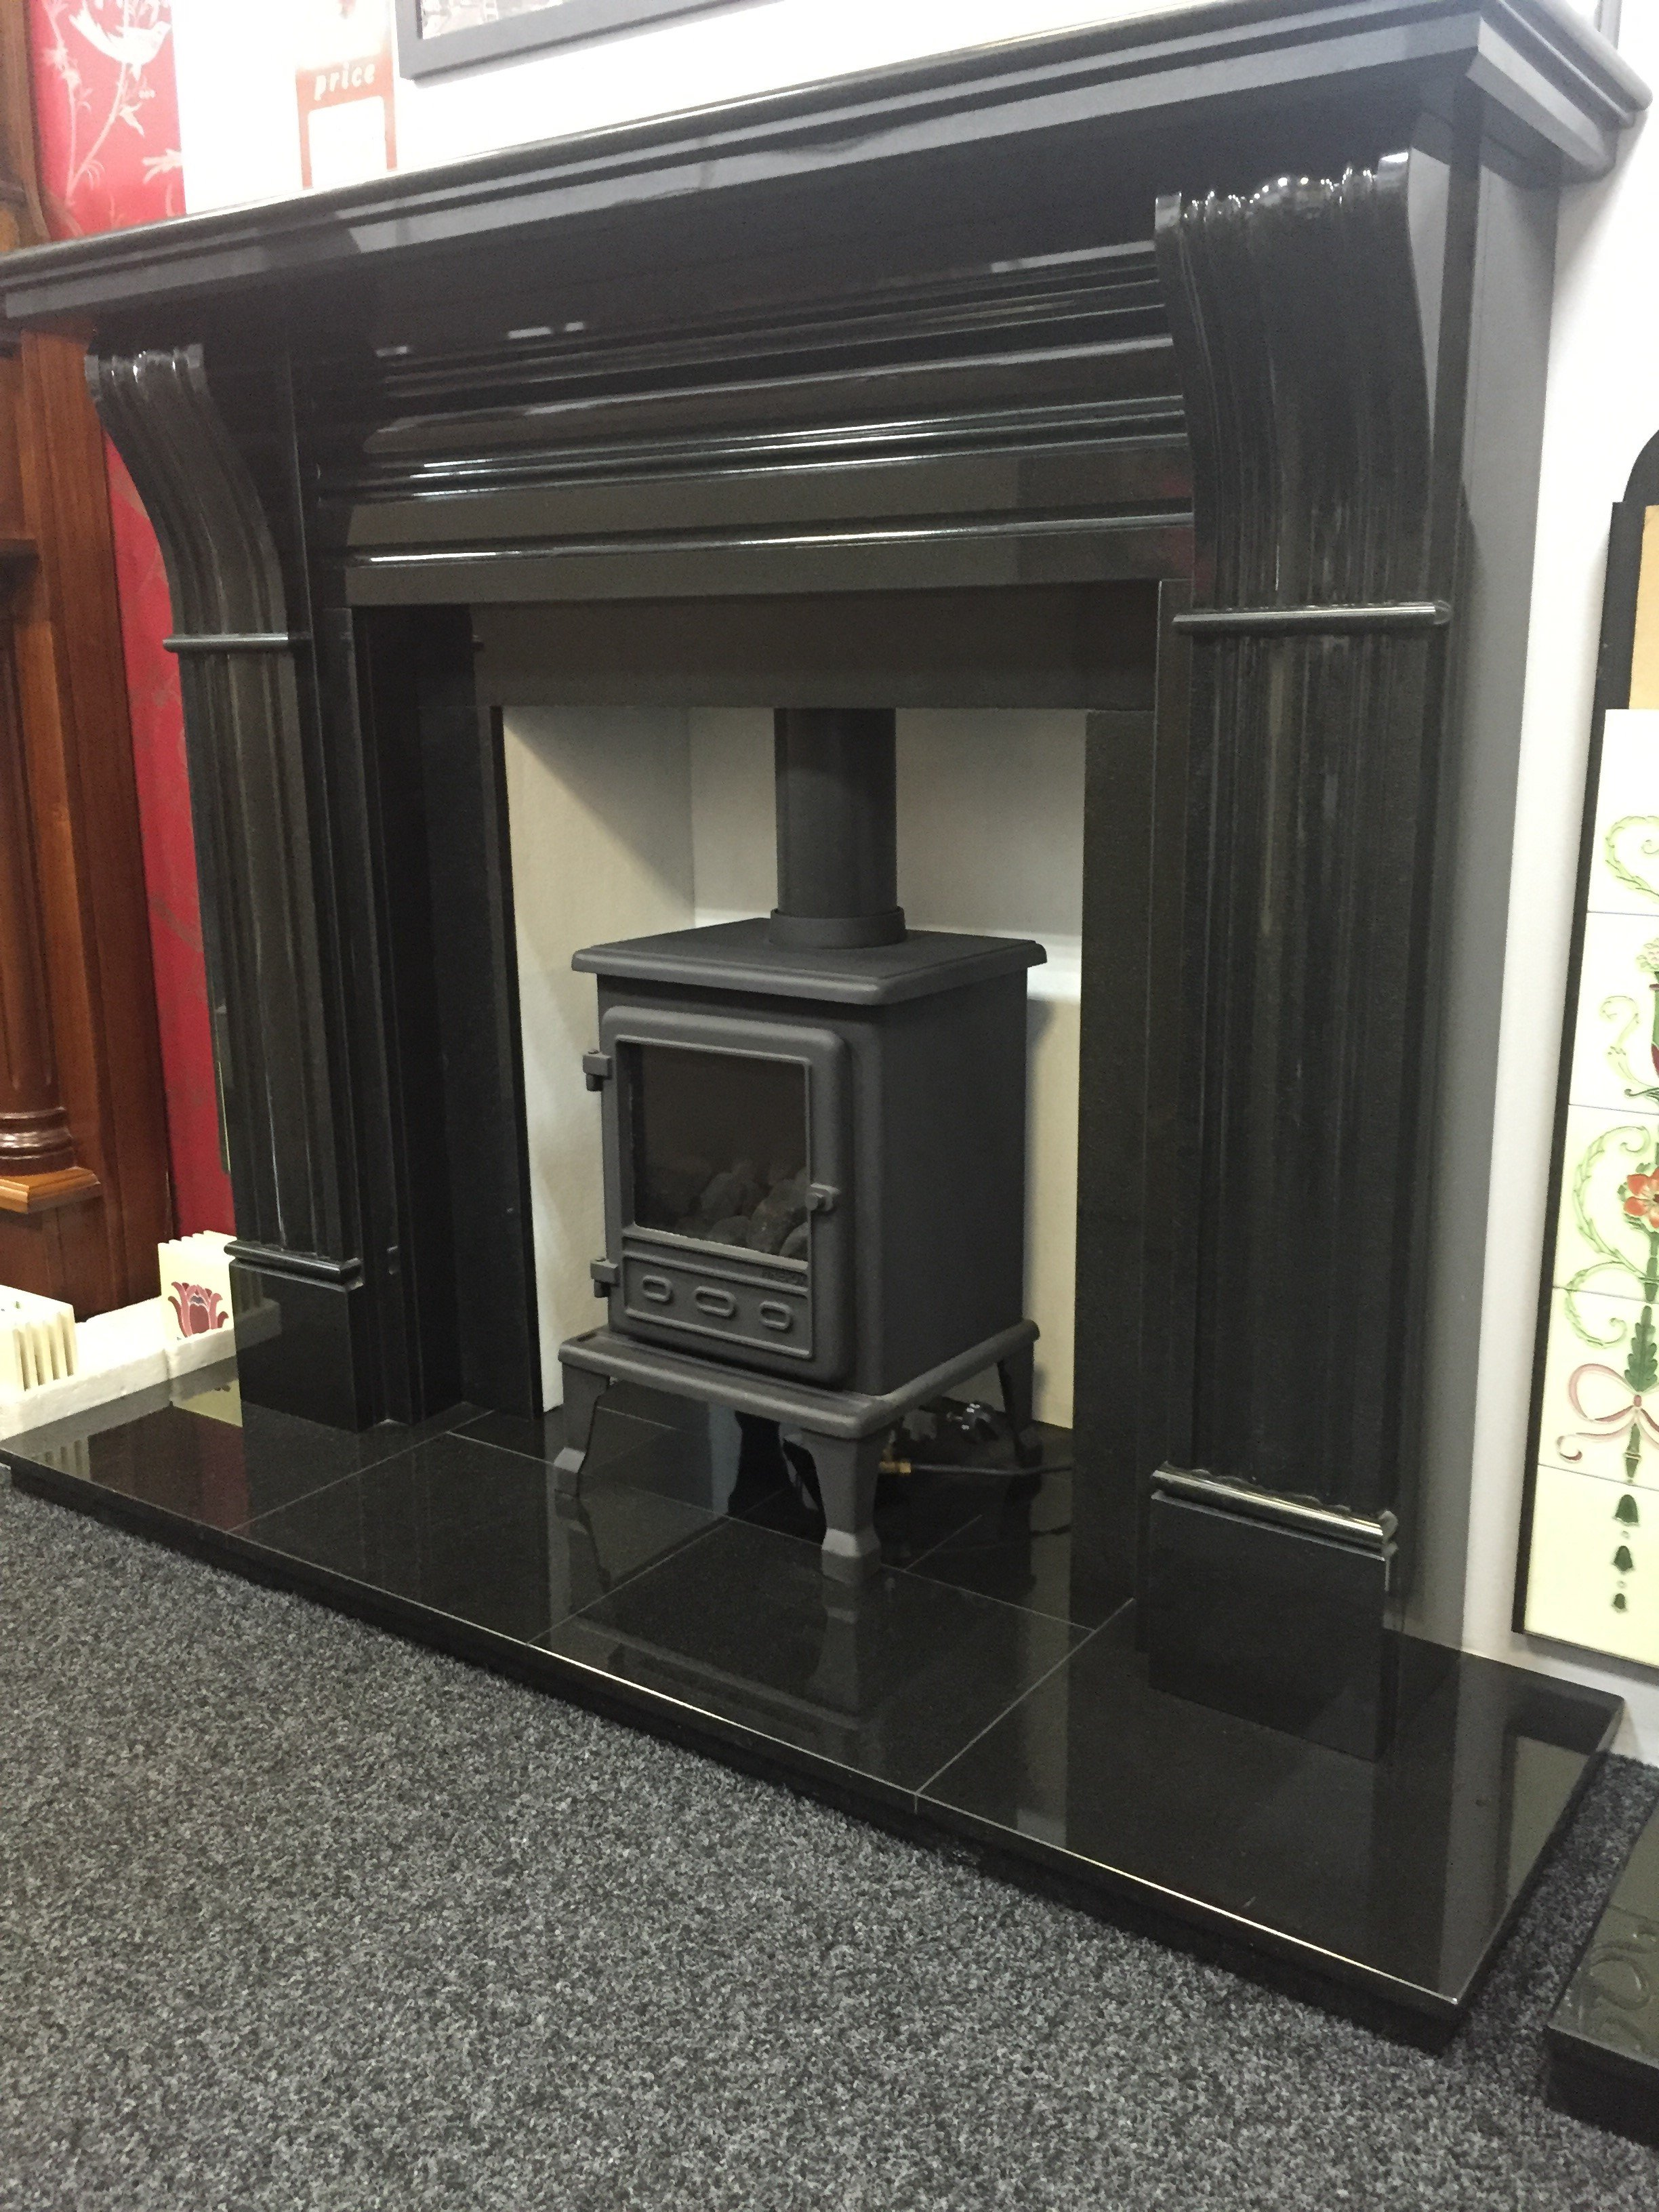 are you looking for granite fireplaces in glasgow